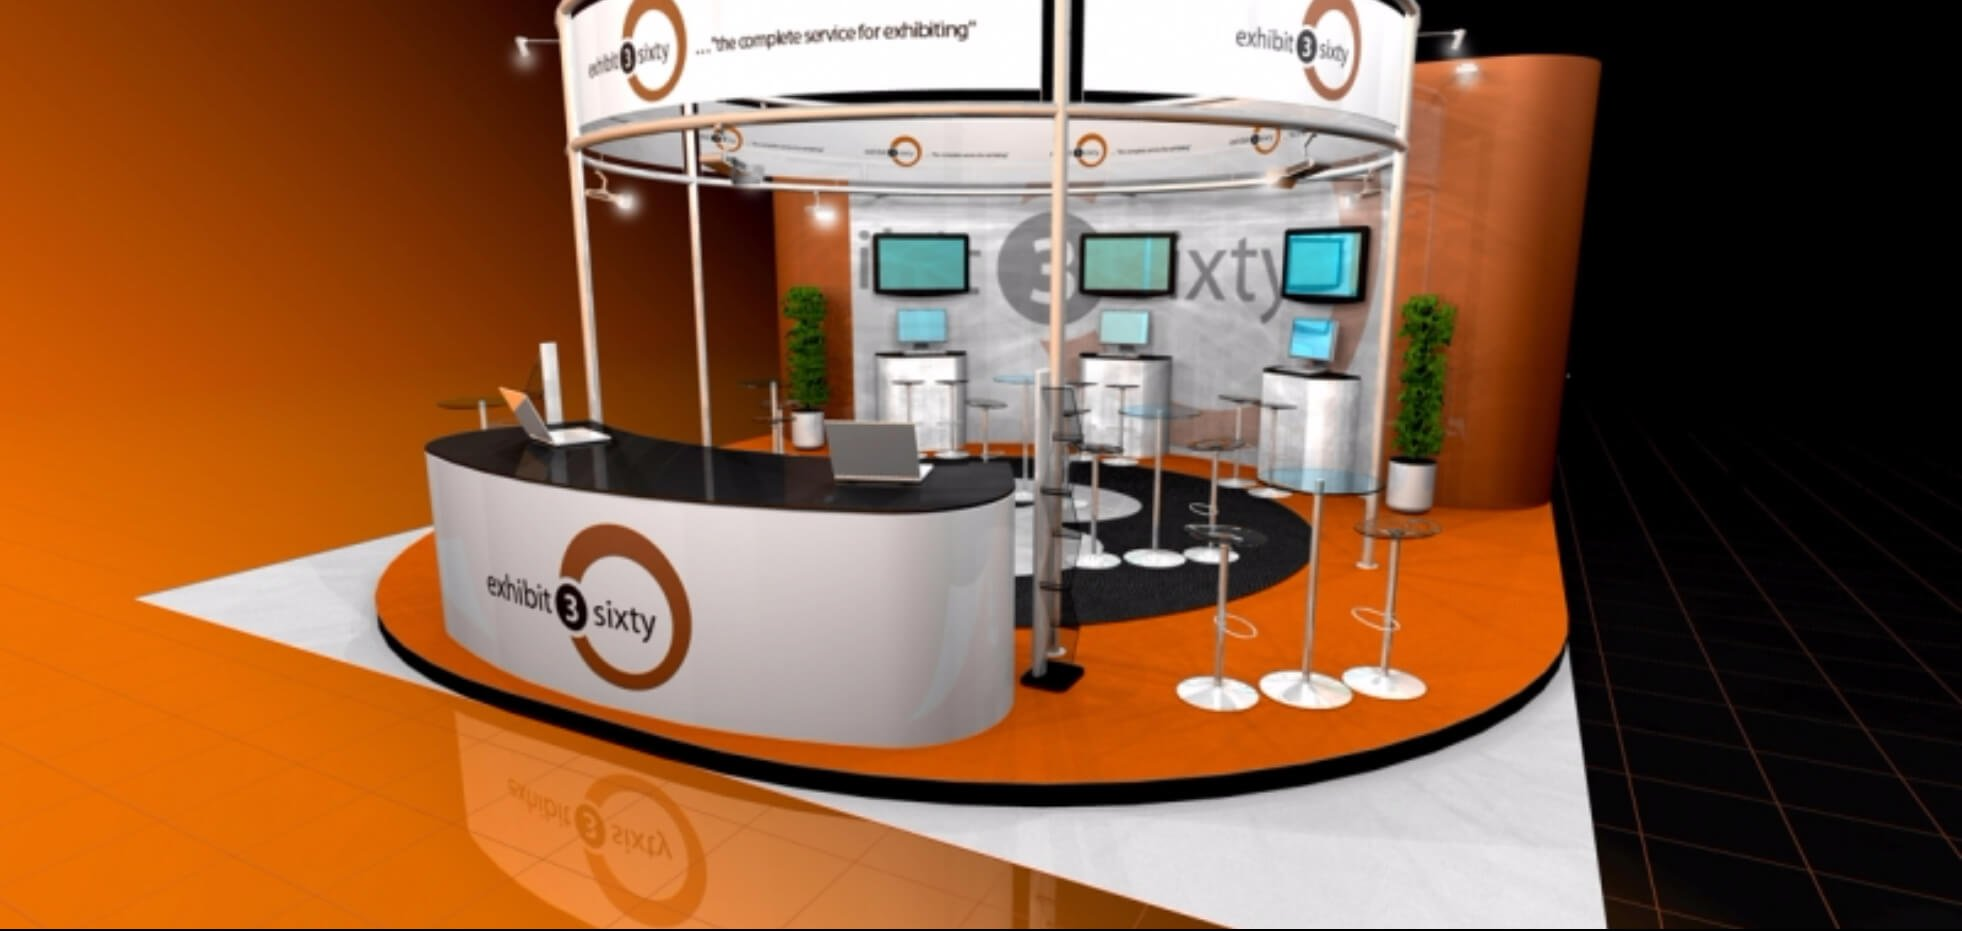 exhibition stand package | Exhibit3sixty